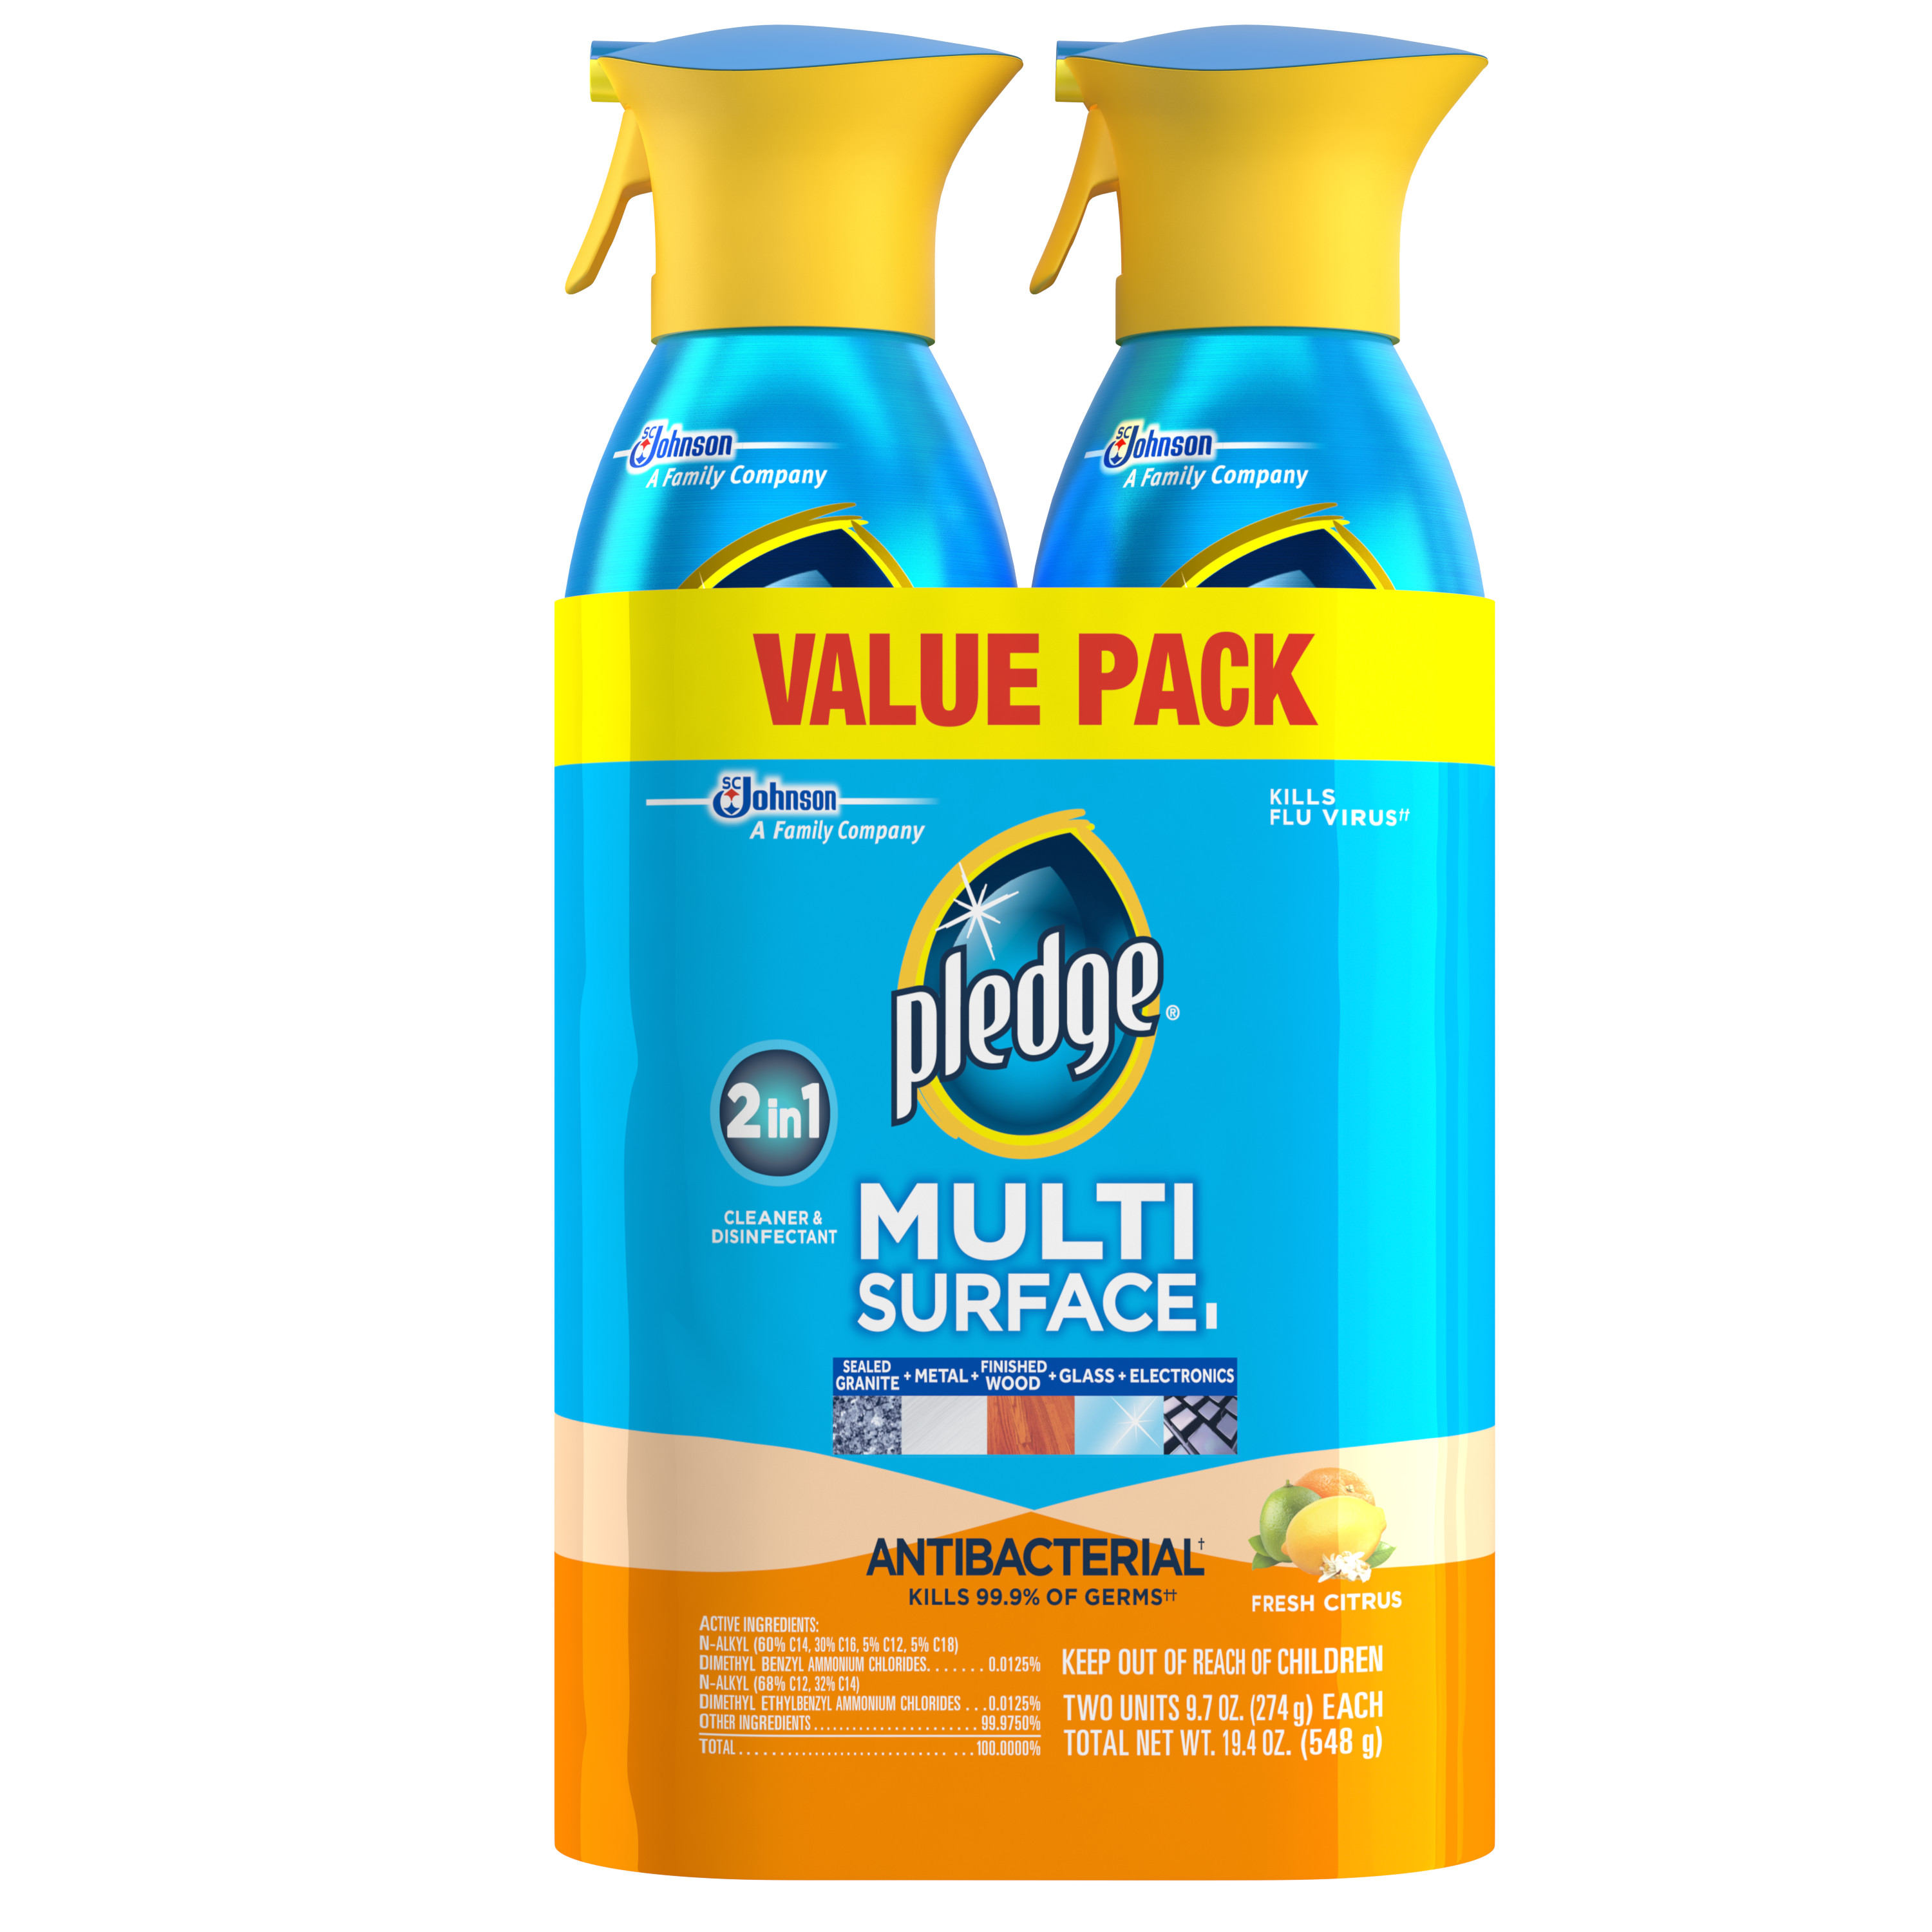 Pledge Multi Surface Antibacterial Everyday Cleaner 9.7 Ounces 2pk